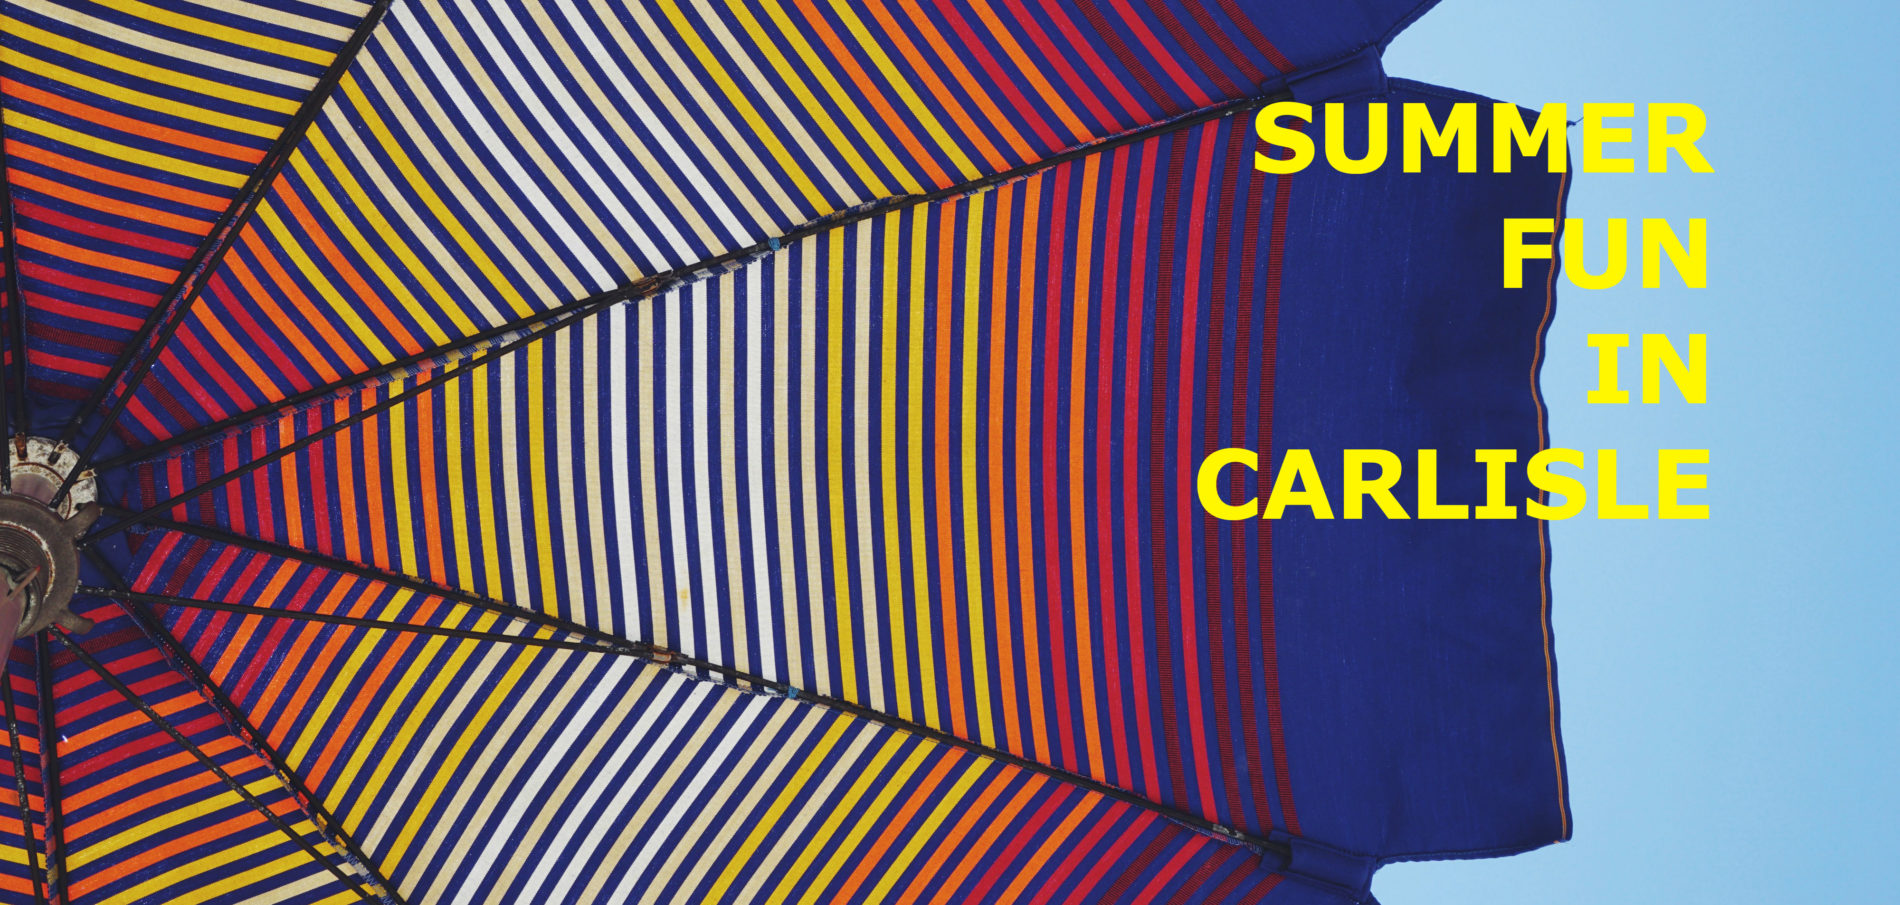 A view from under a brightly colored patio table umbrella with title: Summer Fun In Carlisle.